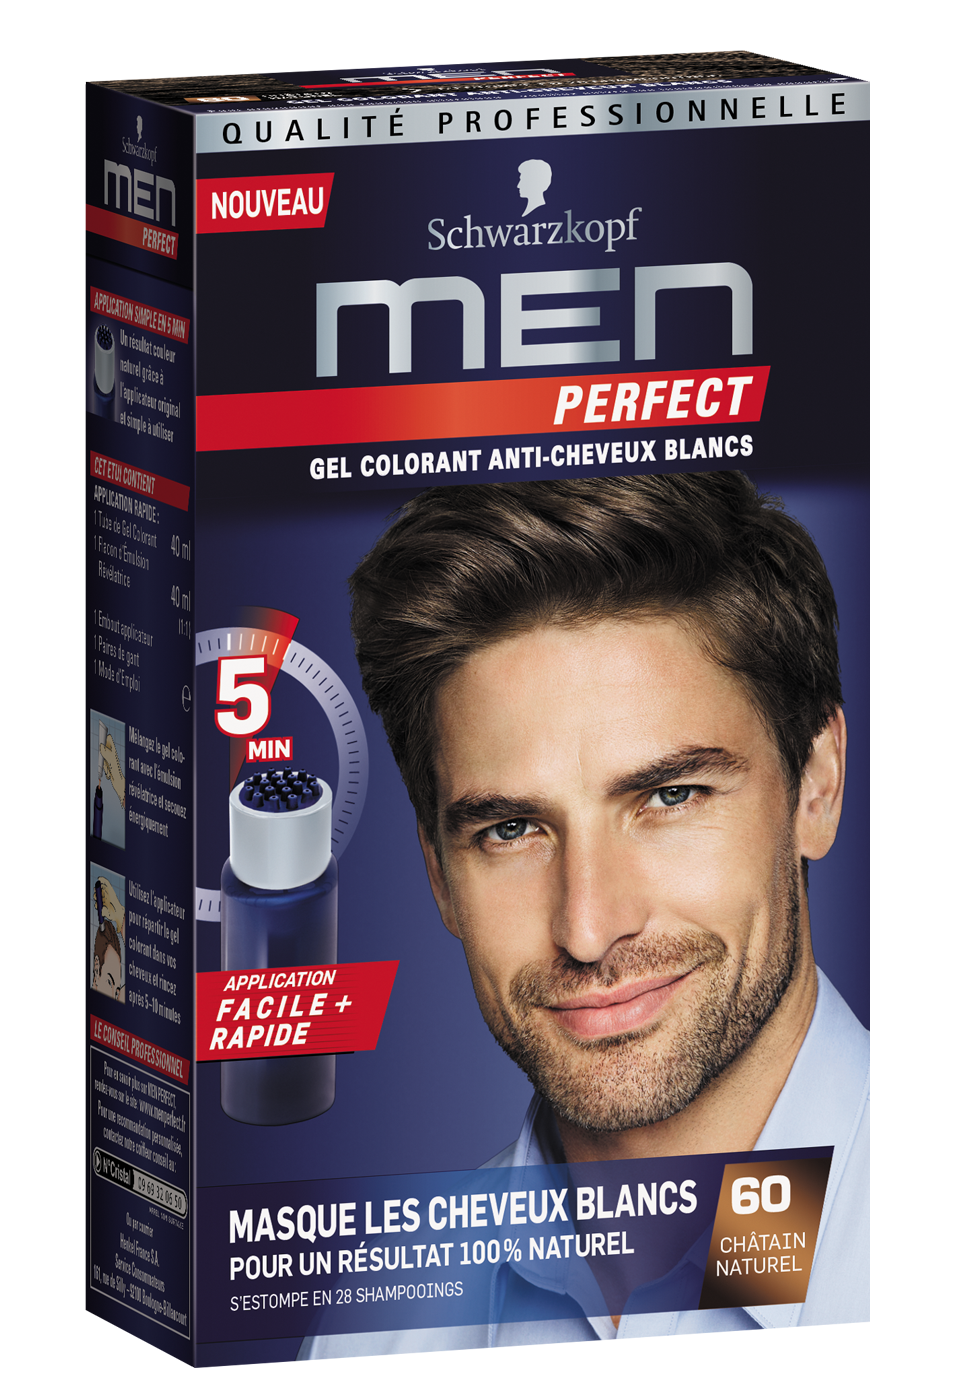 Men Perfect - Gel Colorant anti-cheveux blancs - 60 Châtain Naturel